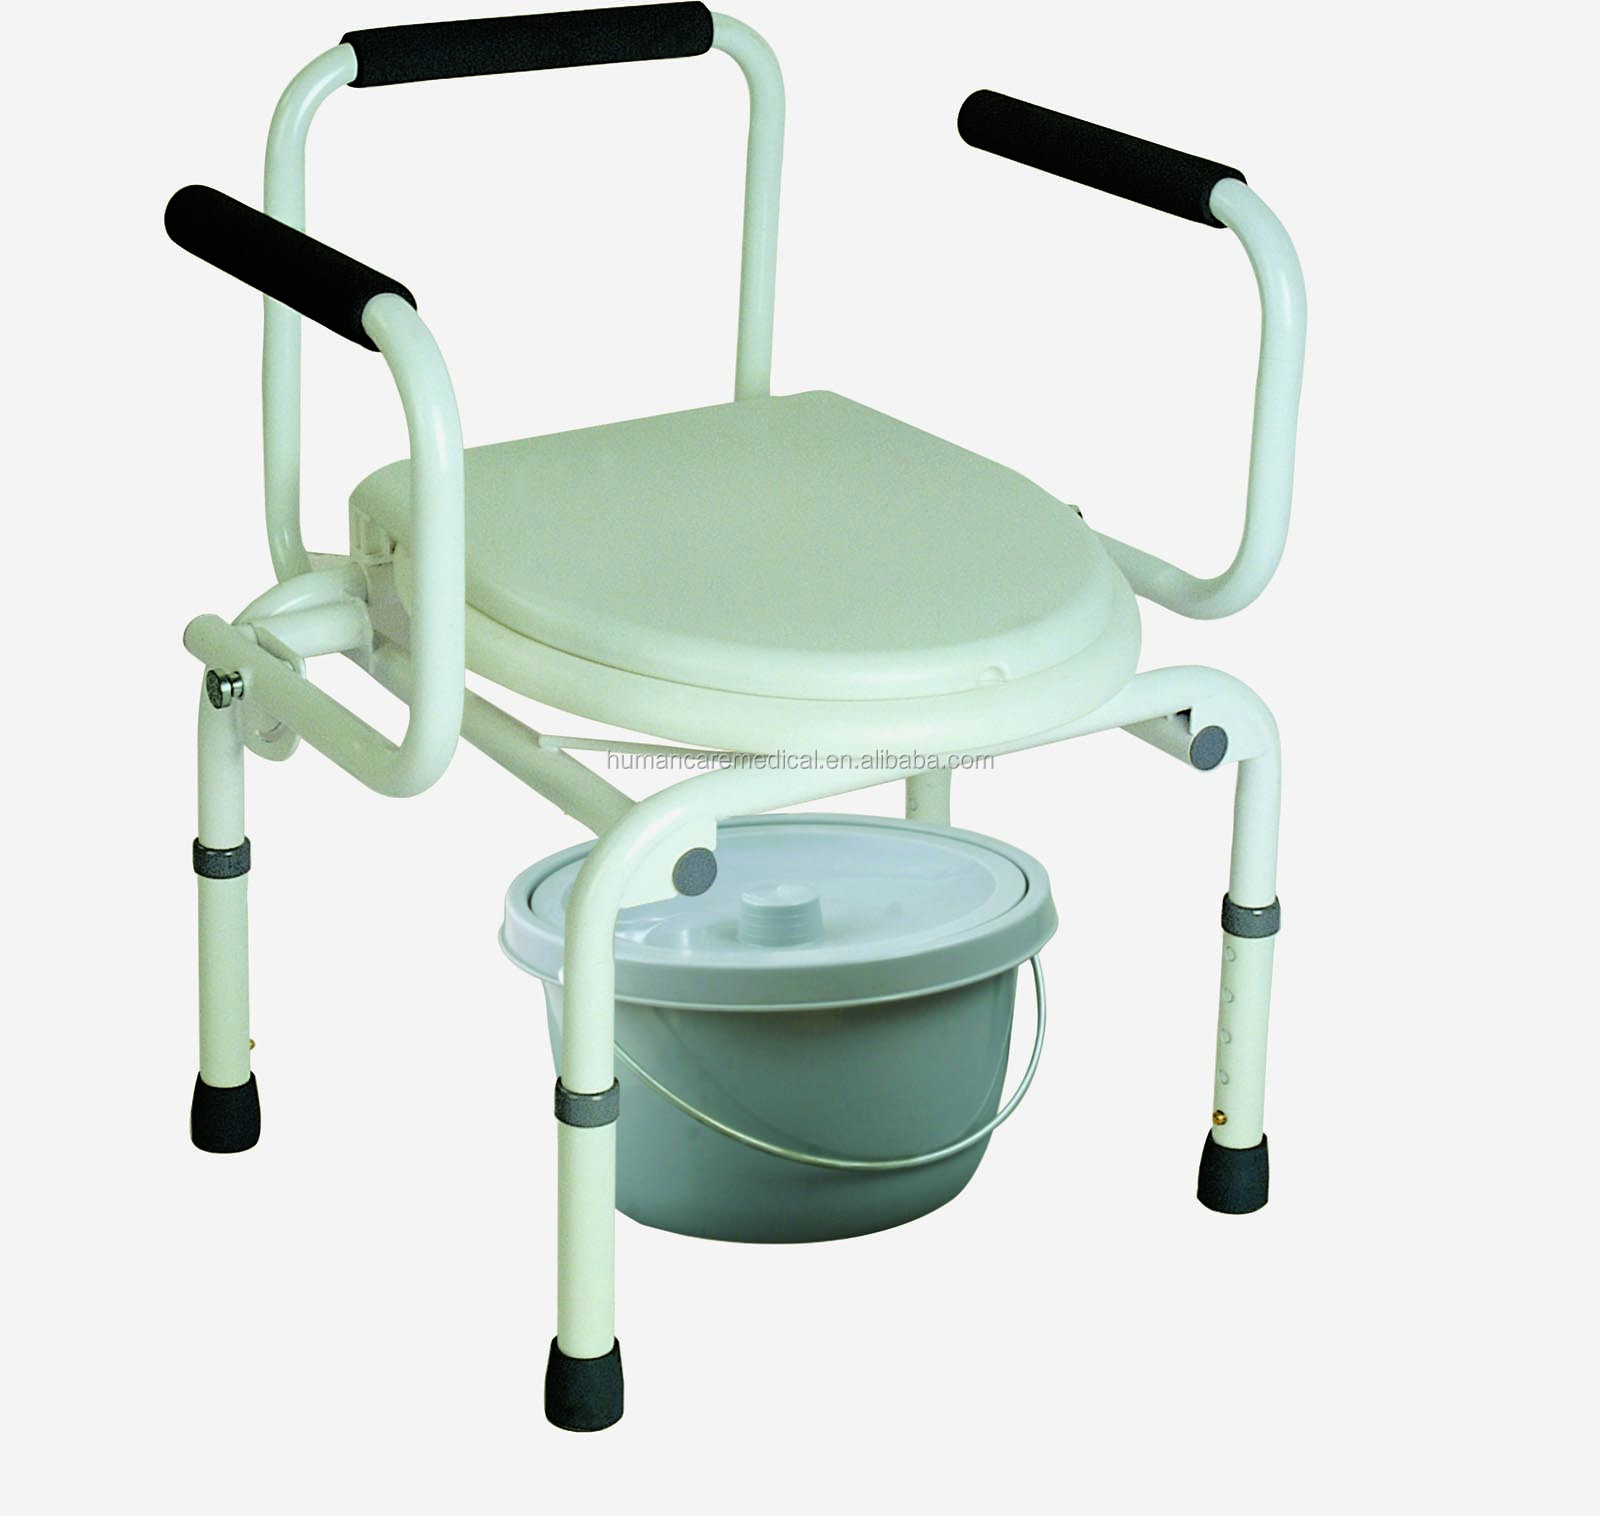 Cheapest Toilet mode Chair Cheapest Toilet mode Chair